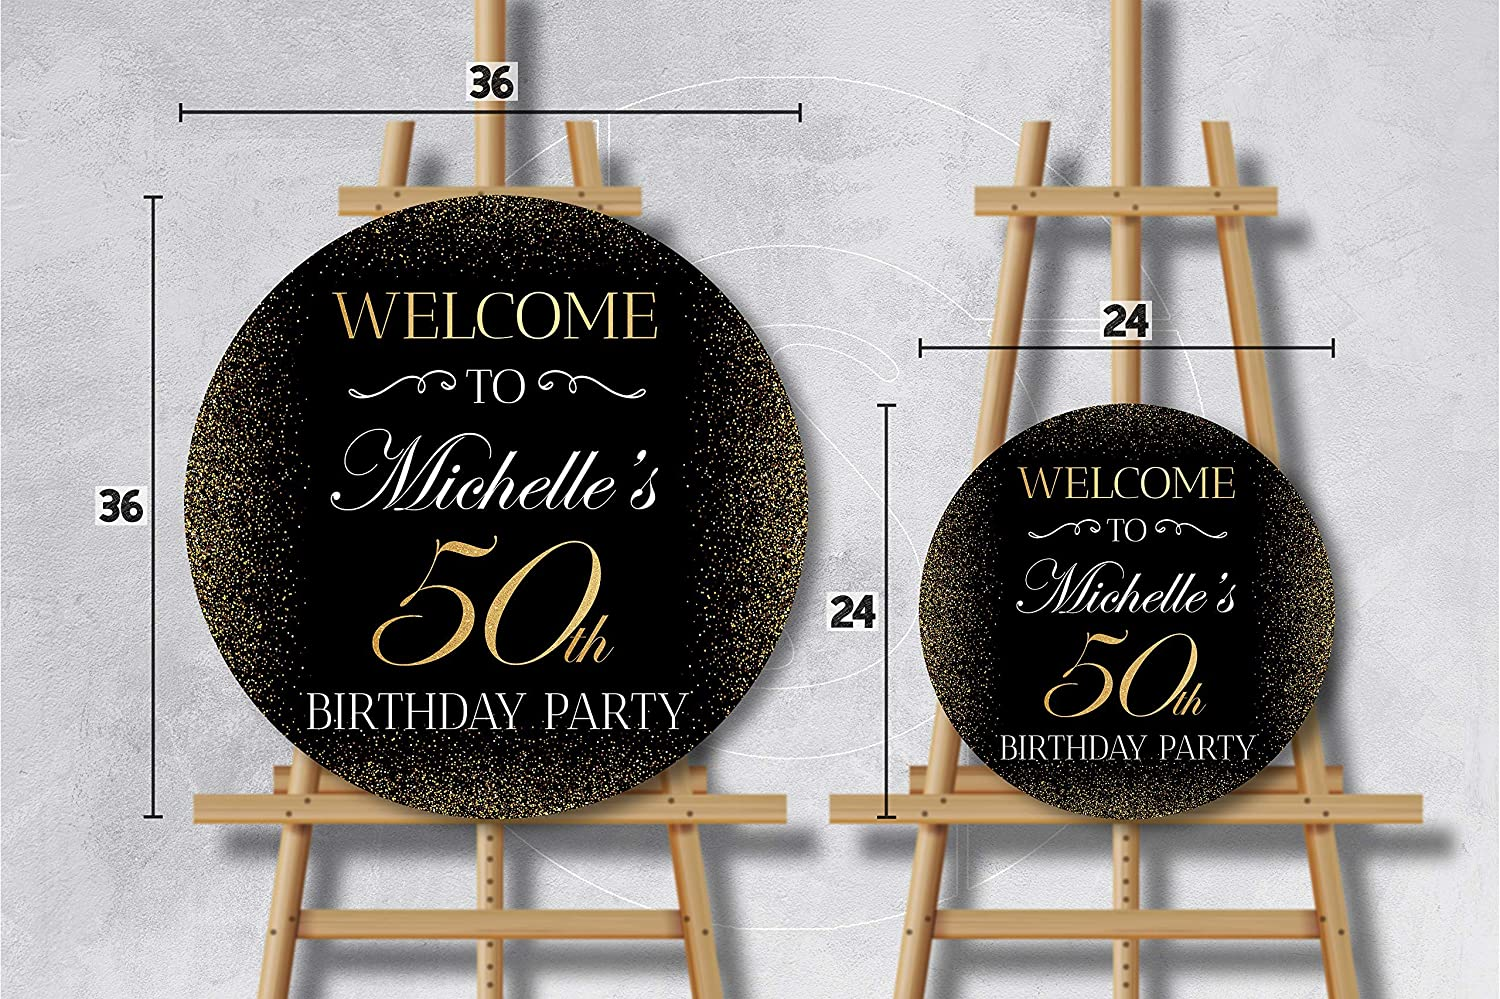 40th Party Supplies Black Gold Sign 50 Years Birthday 24x24 Custom Fifty Banner 50th Birthday Party Decoration 30th 20th Sign Personalized Poster 50th Anniversary Circle Welcome Sign; 36x36